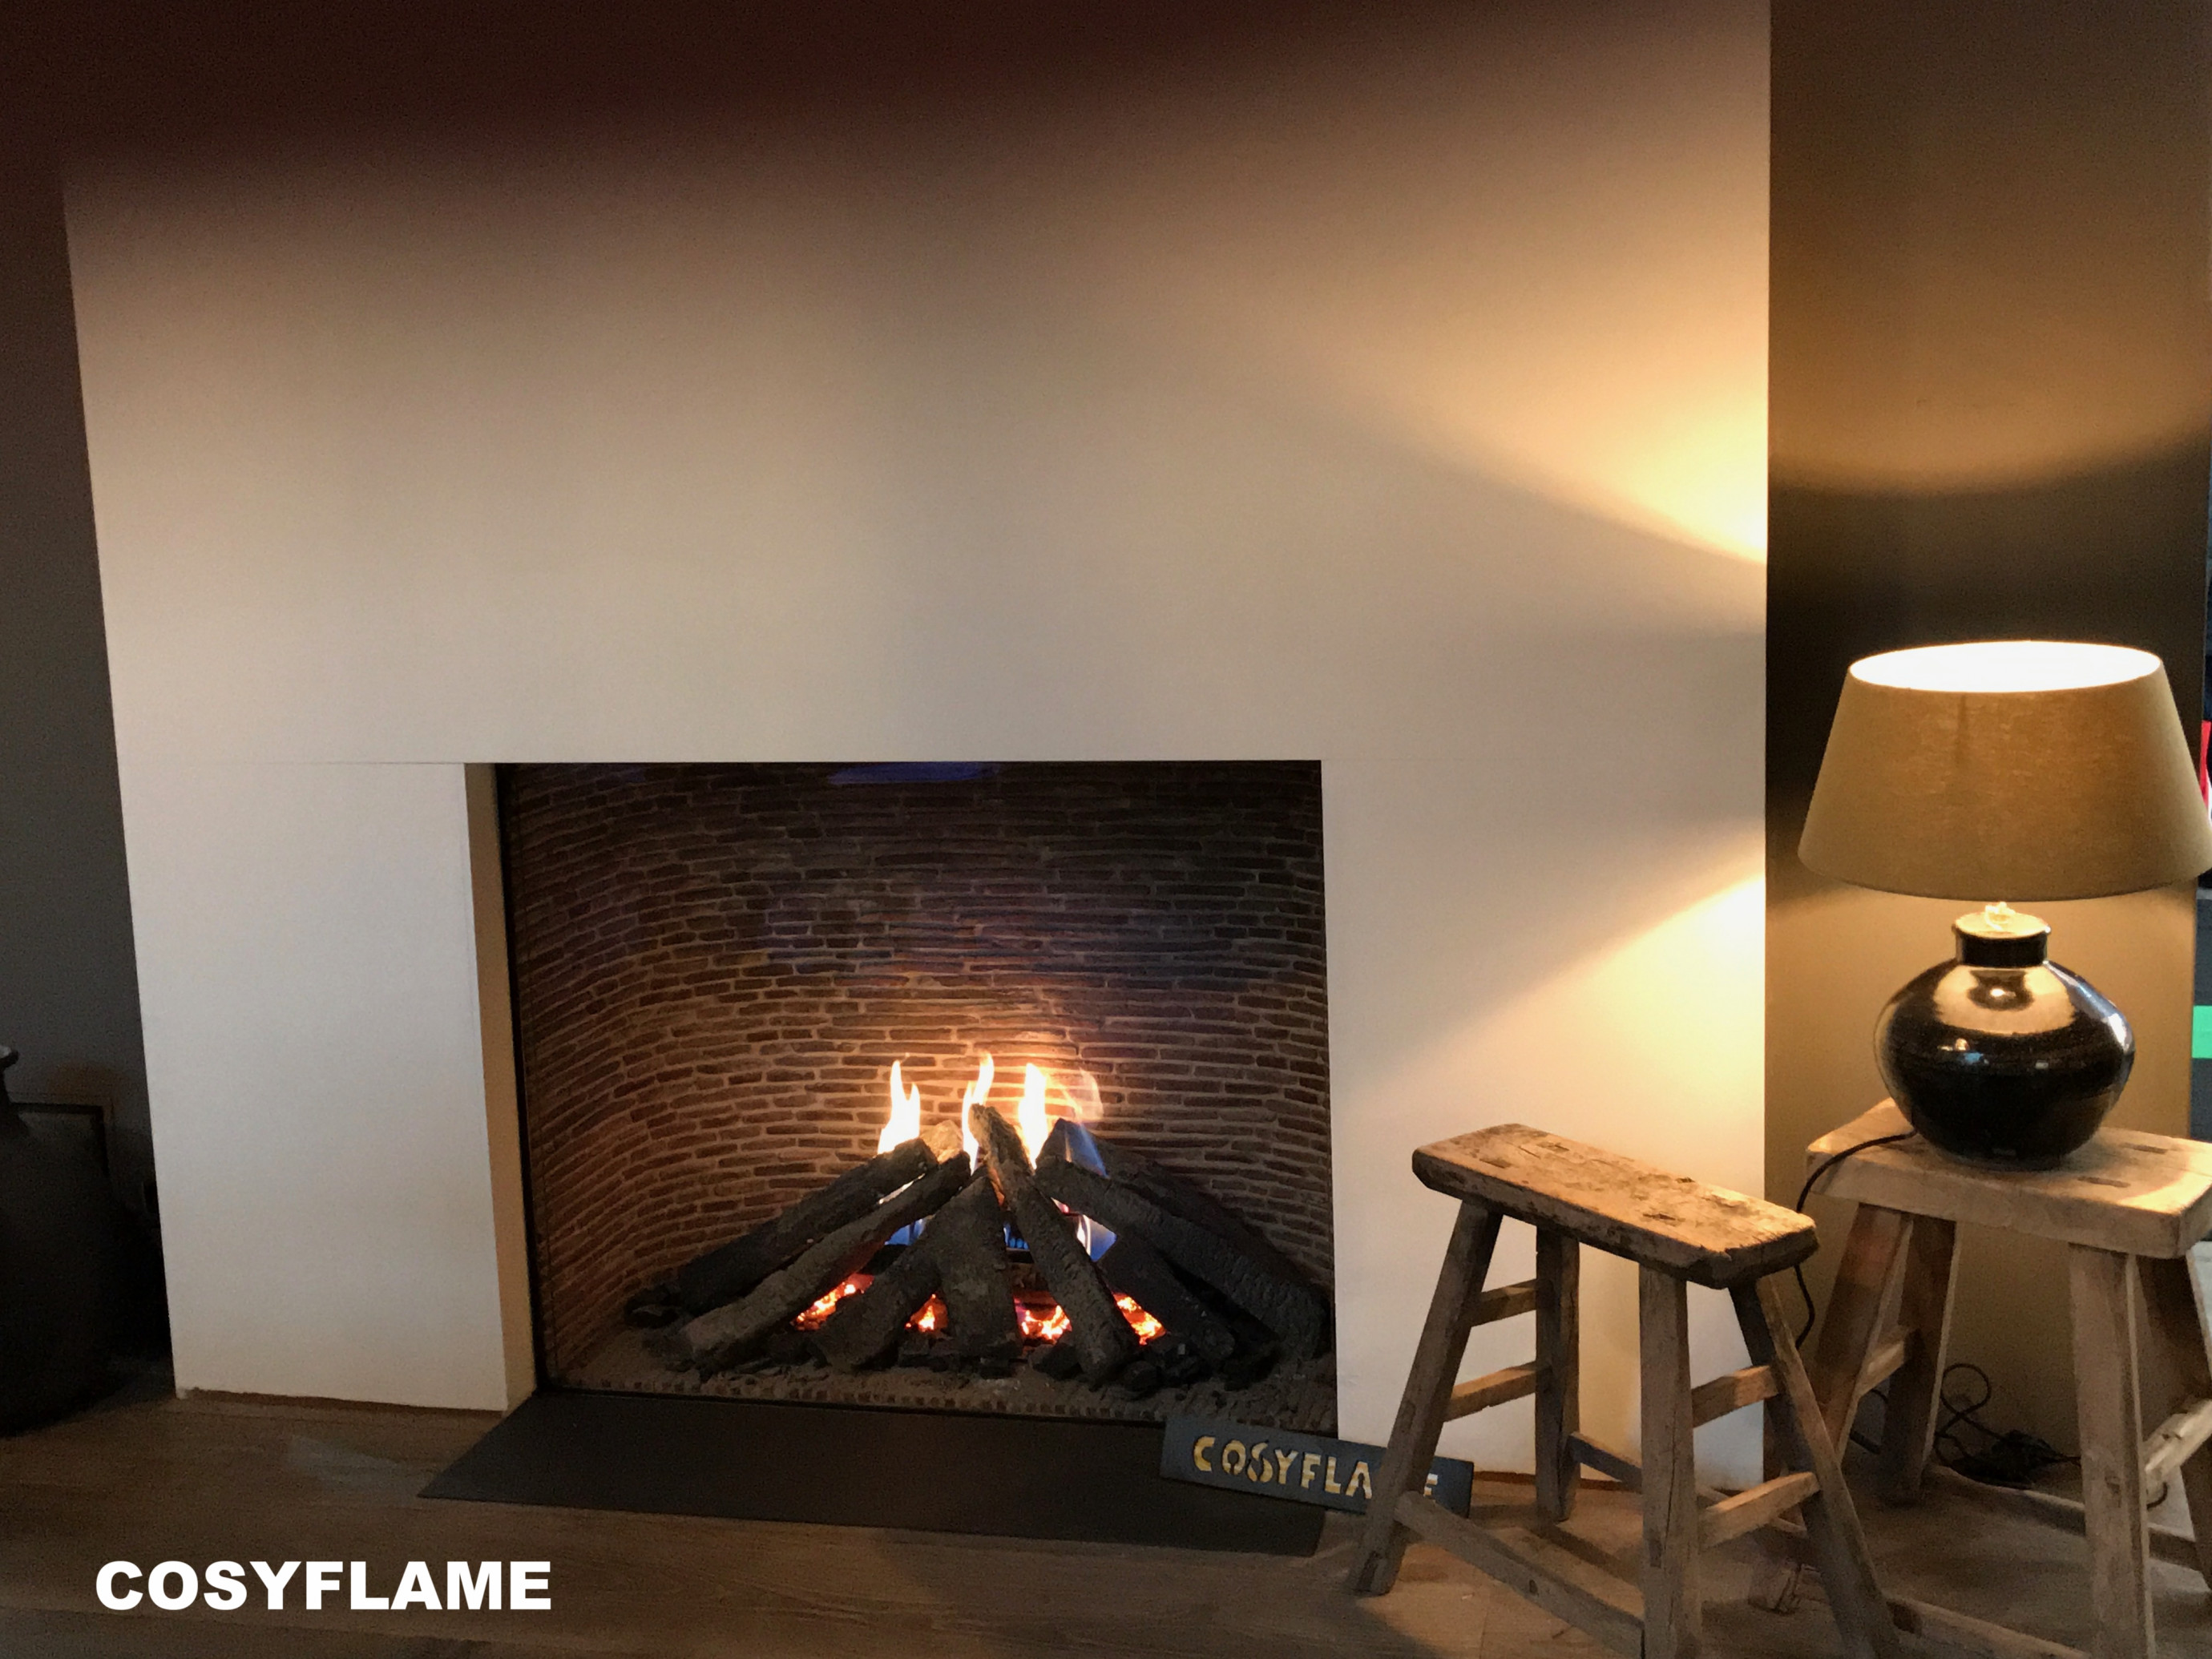 Cosyflame-Rode-pannenstrips-file2-5.jpeg